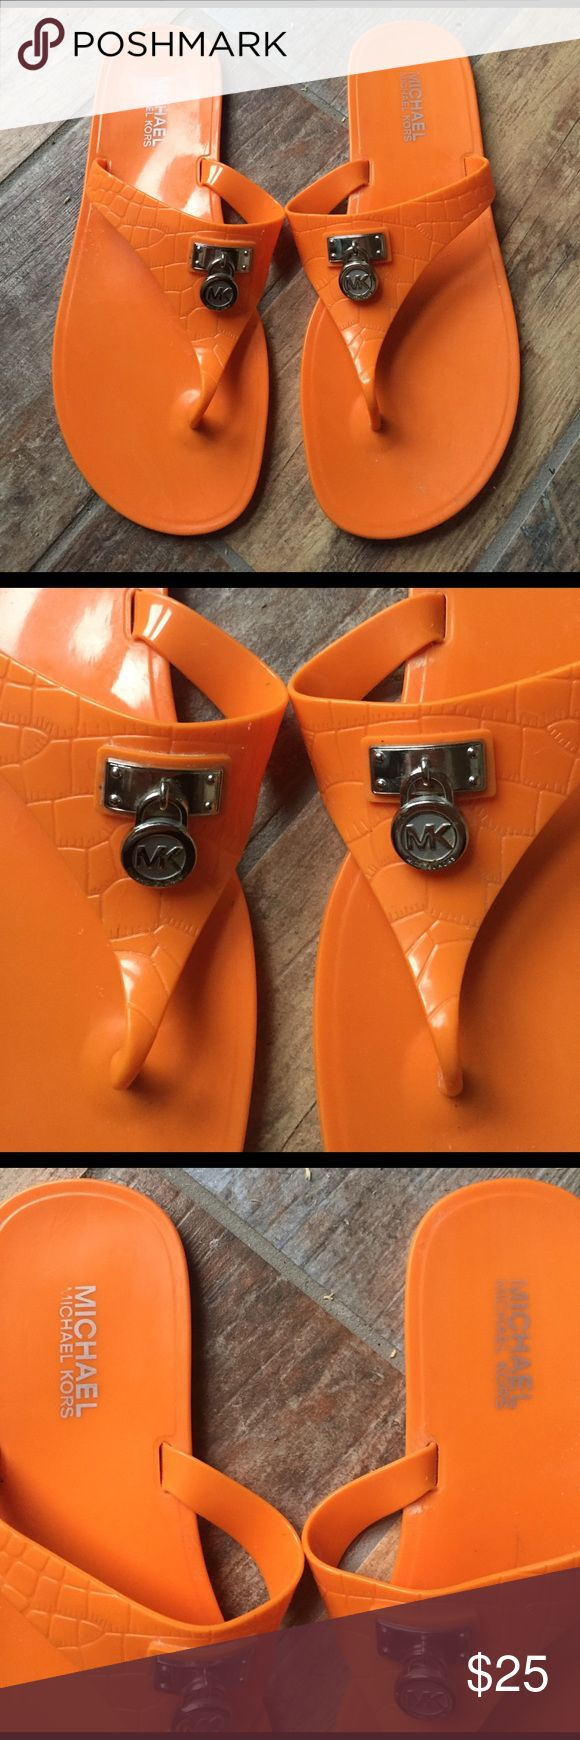 Michael Kors Sandals with Silver Logo Orange flexible plastic sandals (like a jelly shoe material) with silver hardware; worn only a couple times; good condition; great for summer! MICHAEL Michael Kors Shoes Sandals